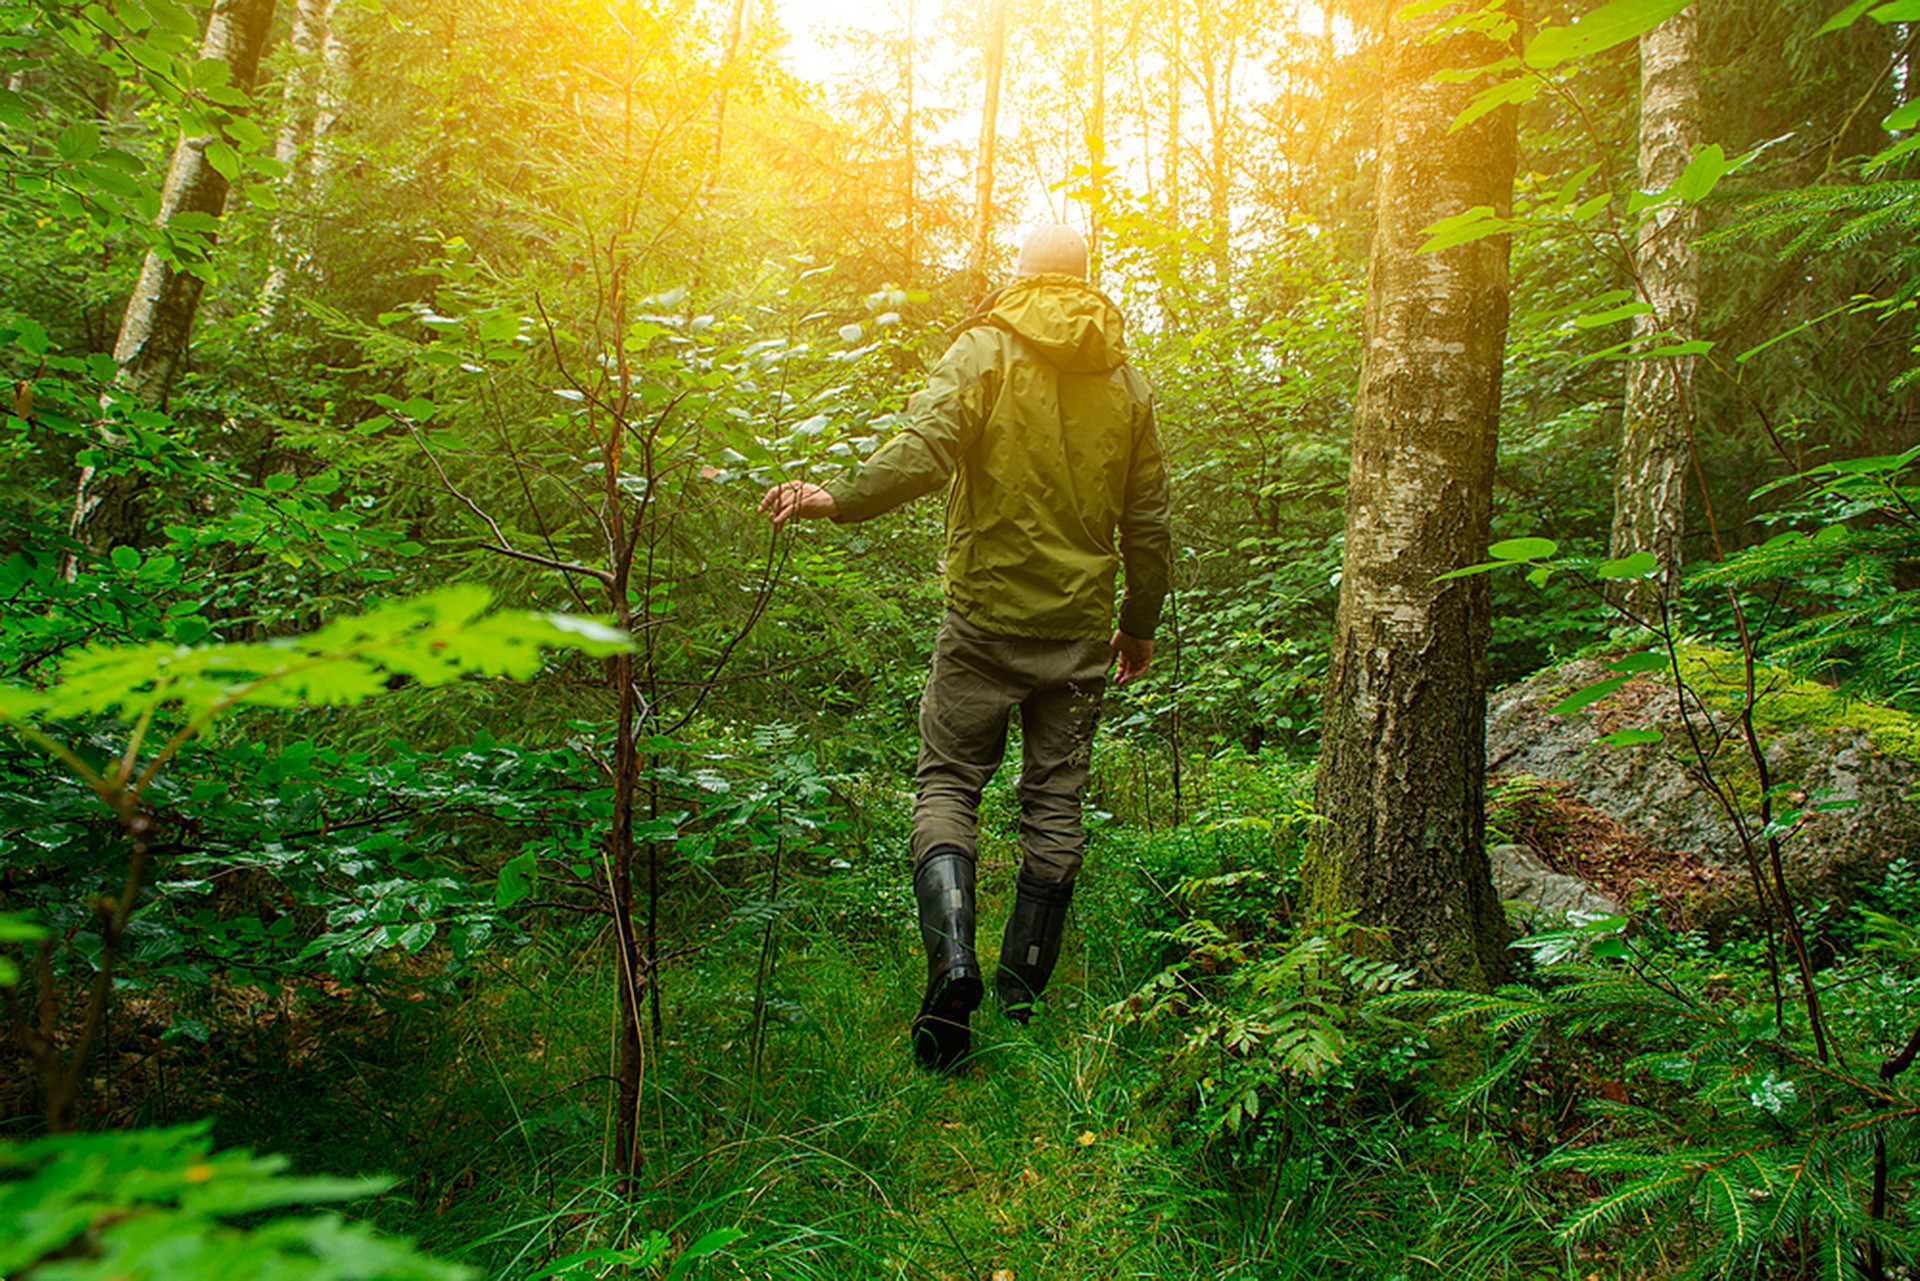 A man walking through thick forest